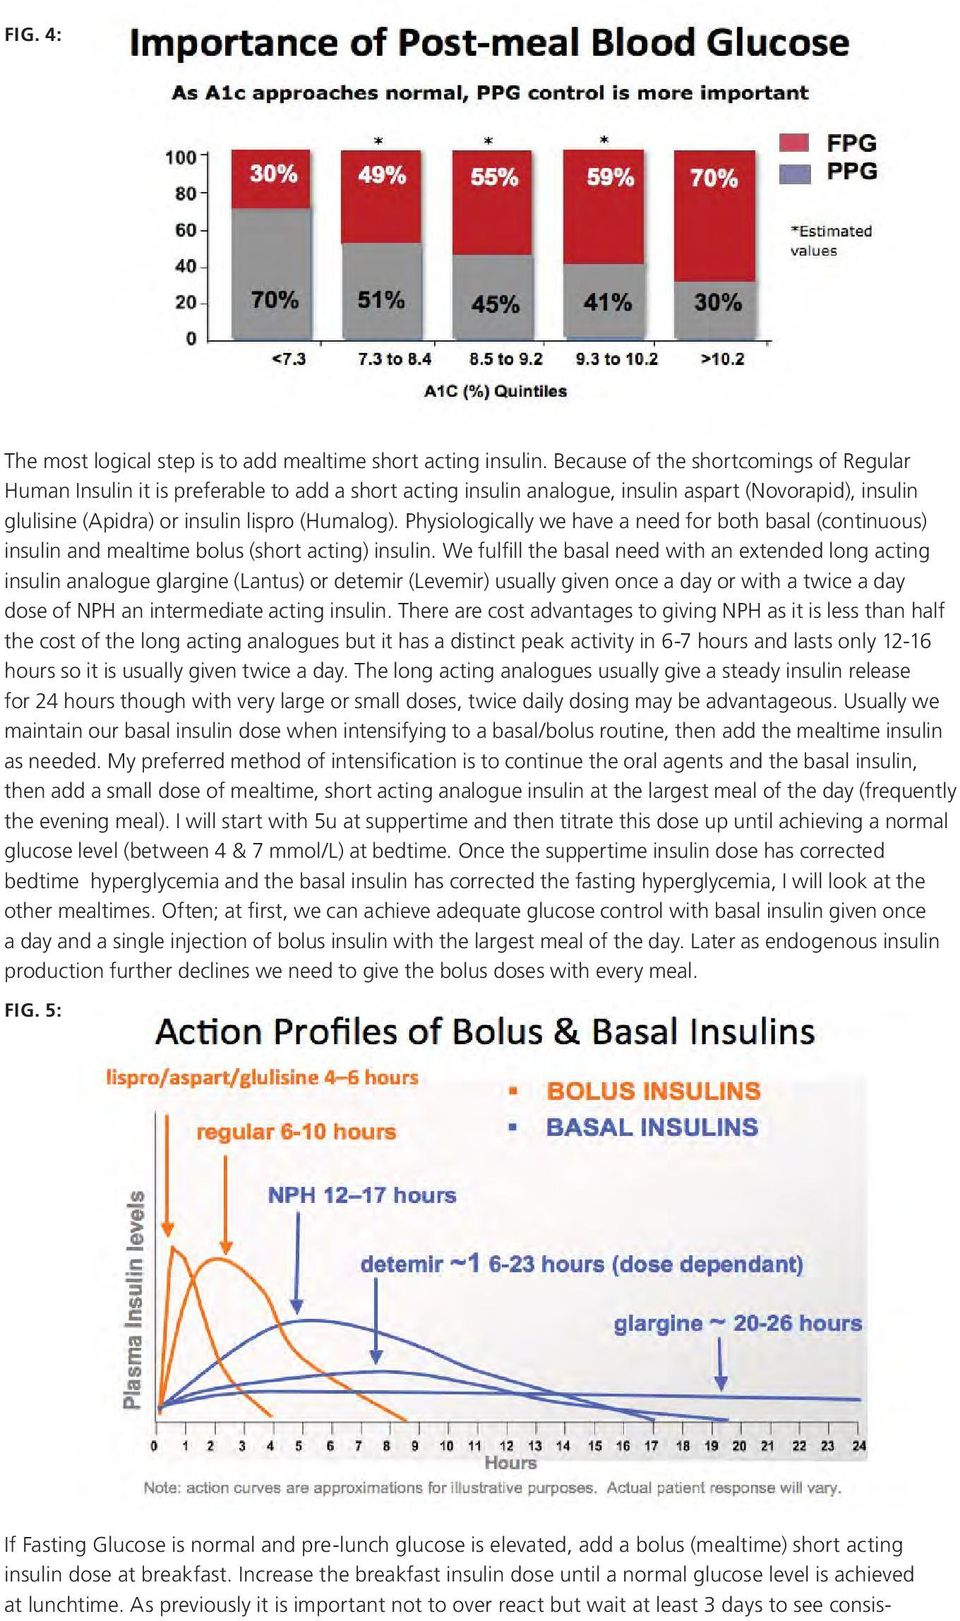 Physiologically we have a need for both basal (continuous) insulin and mealtime bolus (short acting) insulin.